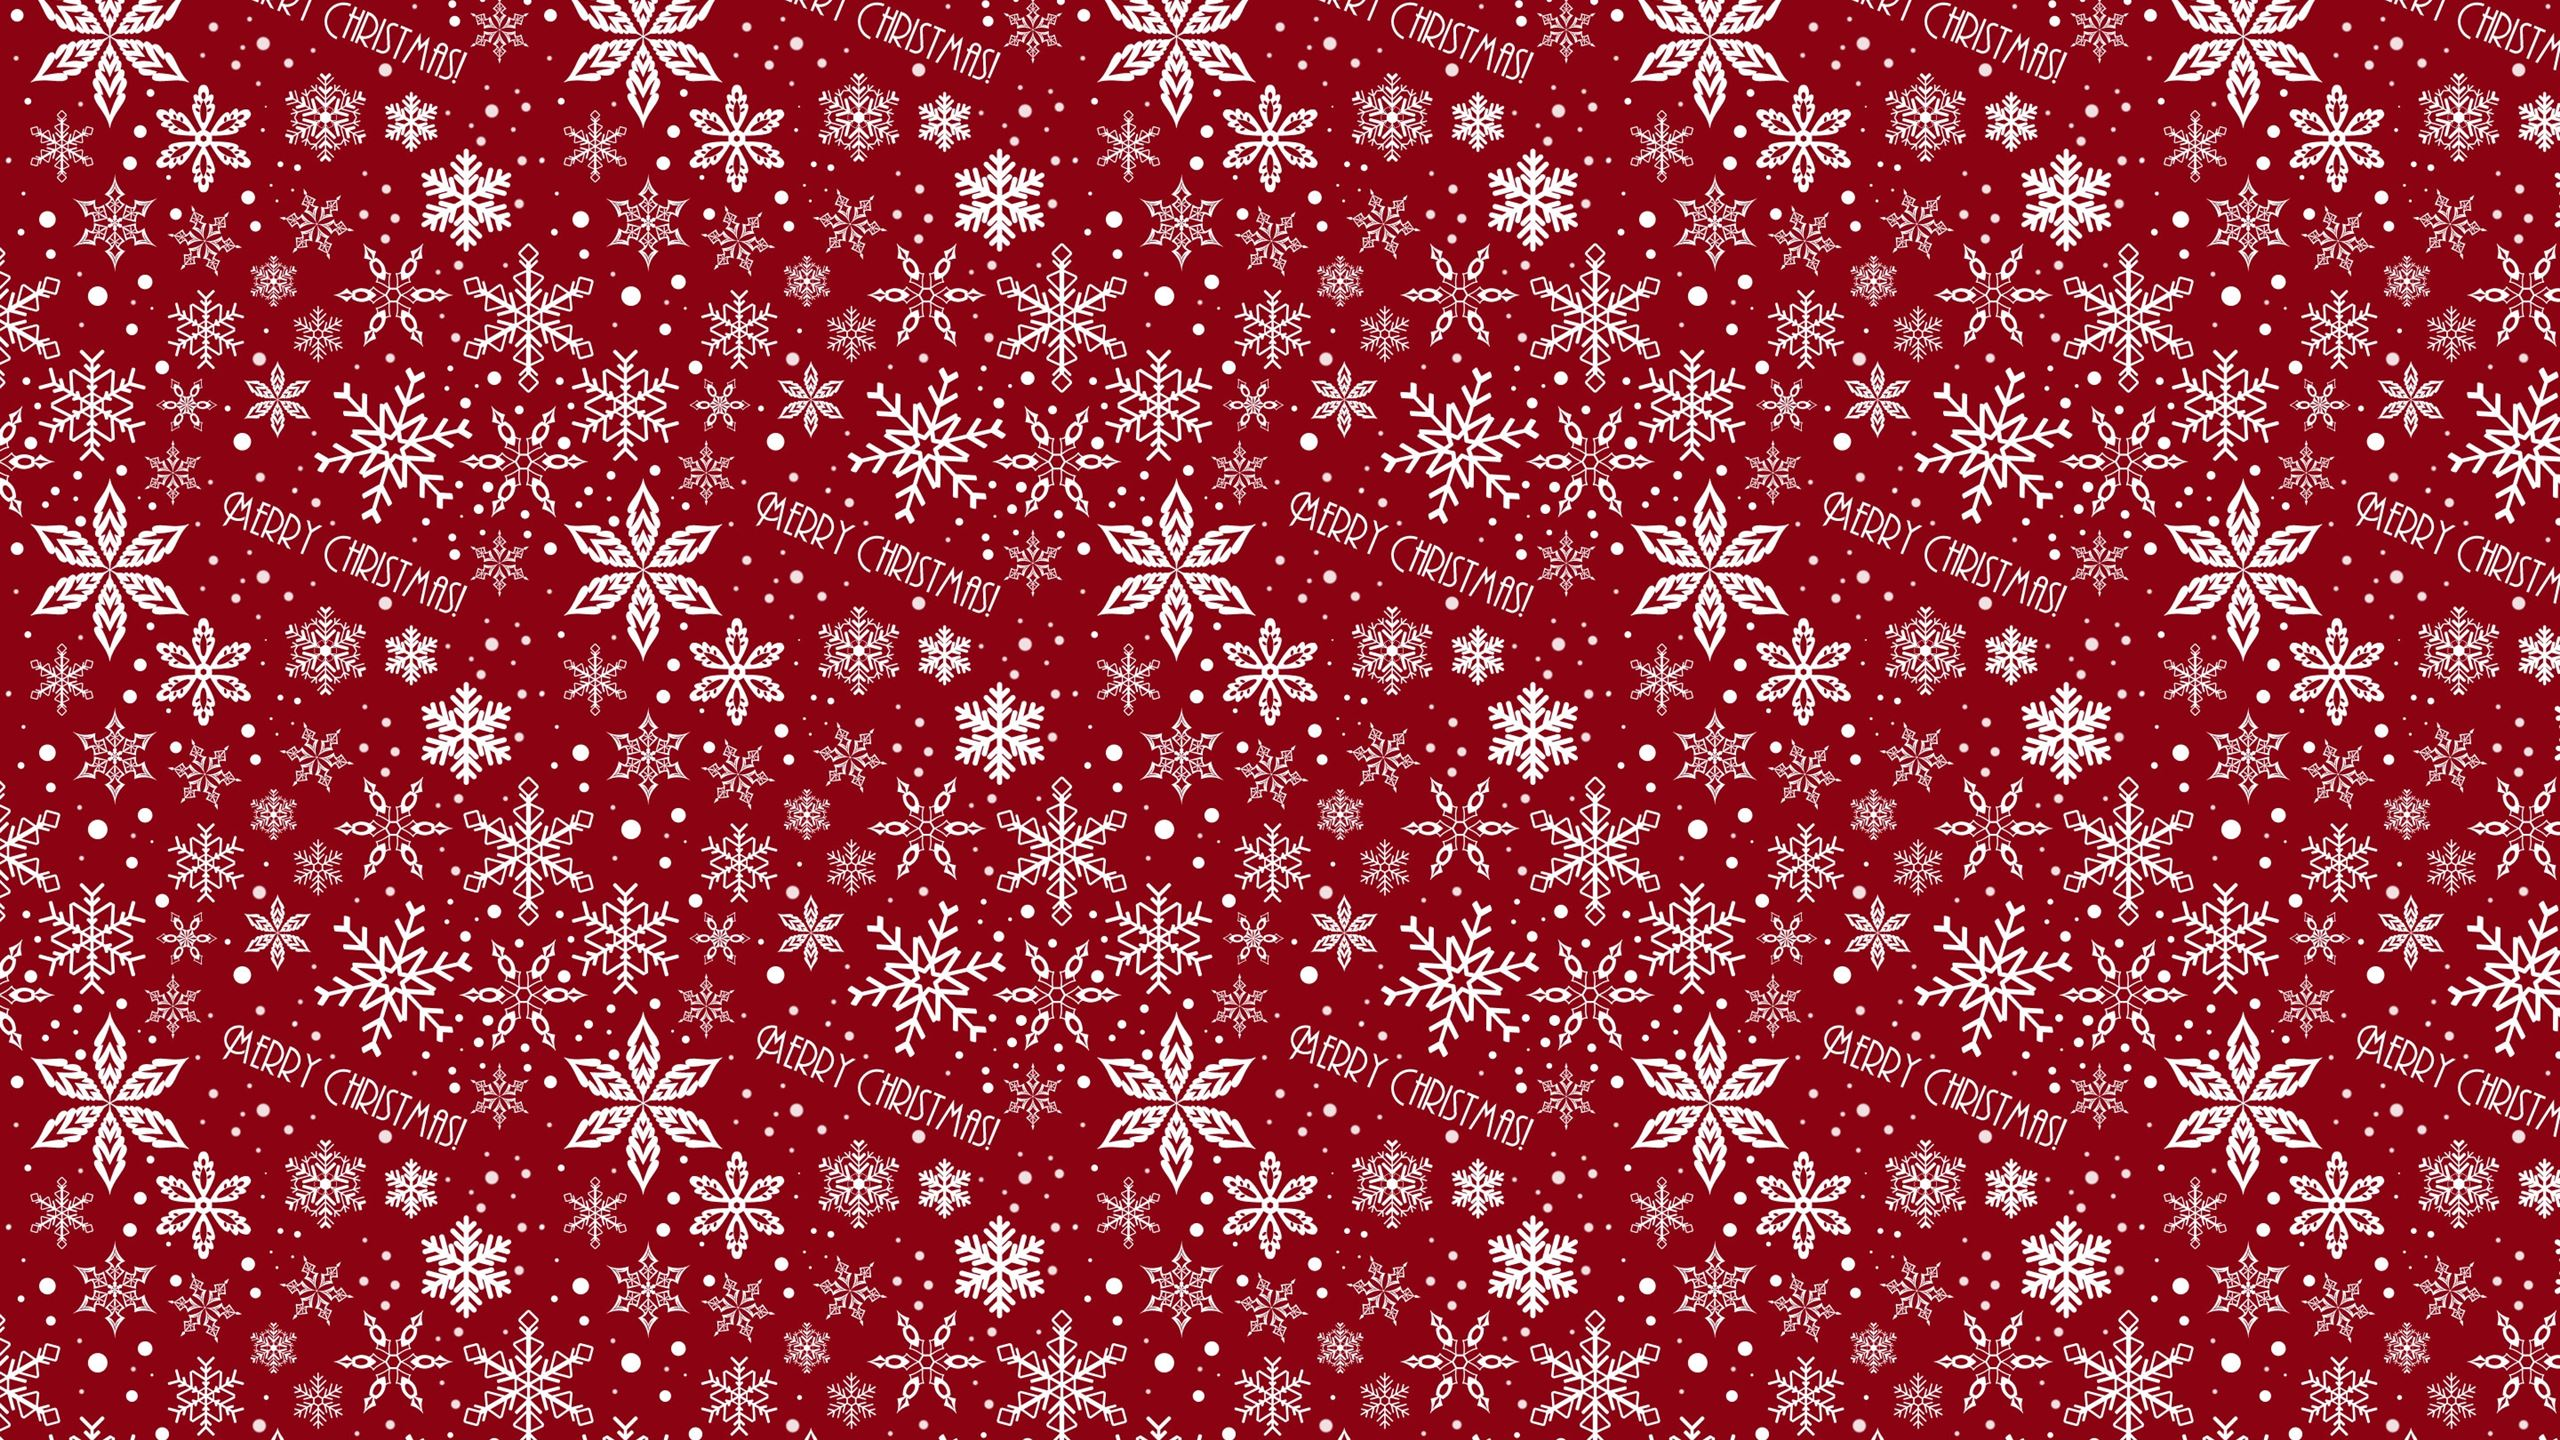 Get the latest hd christmas wallpapers for free.